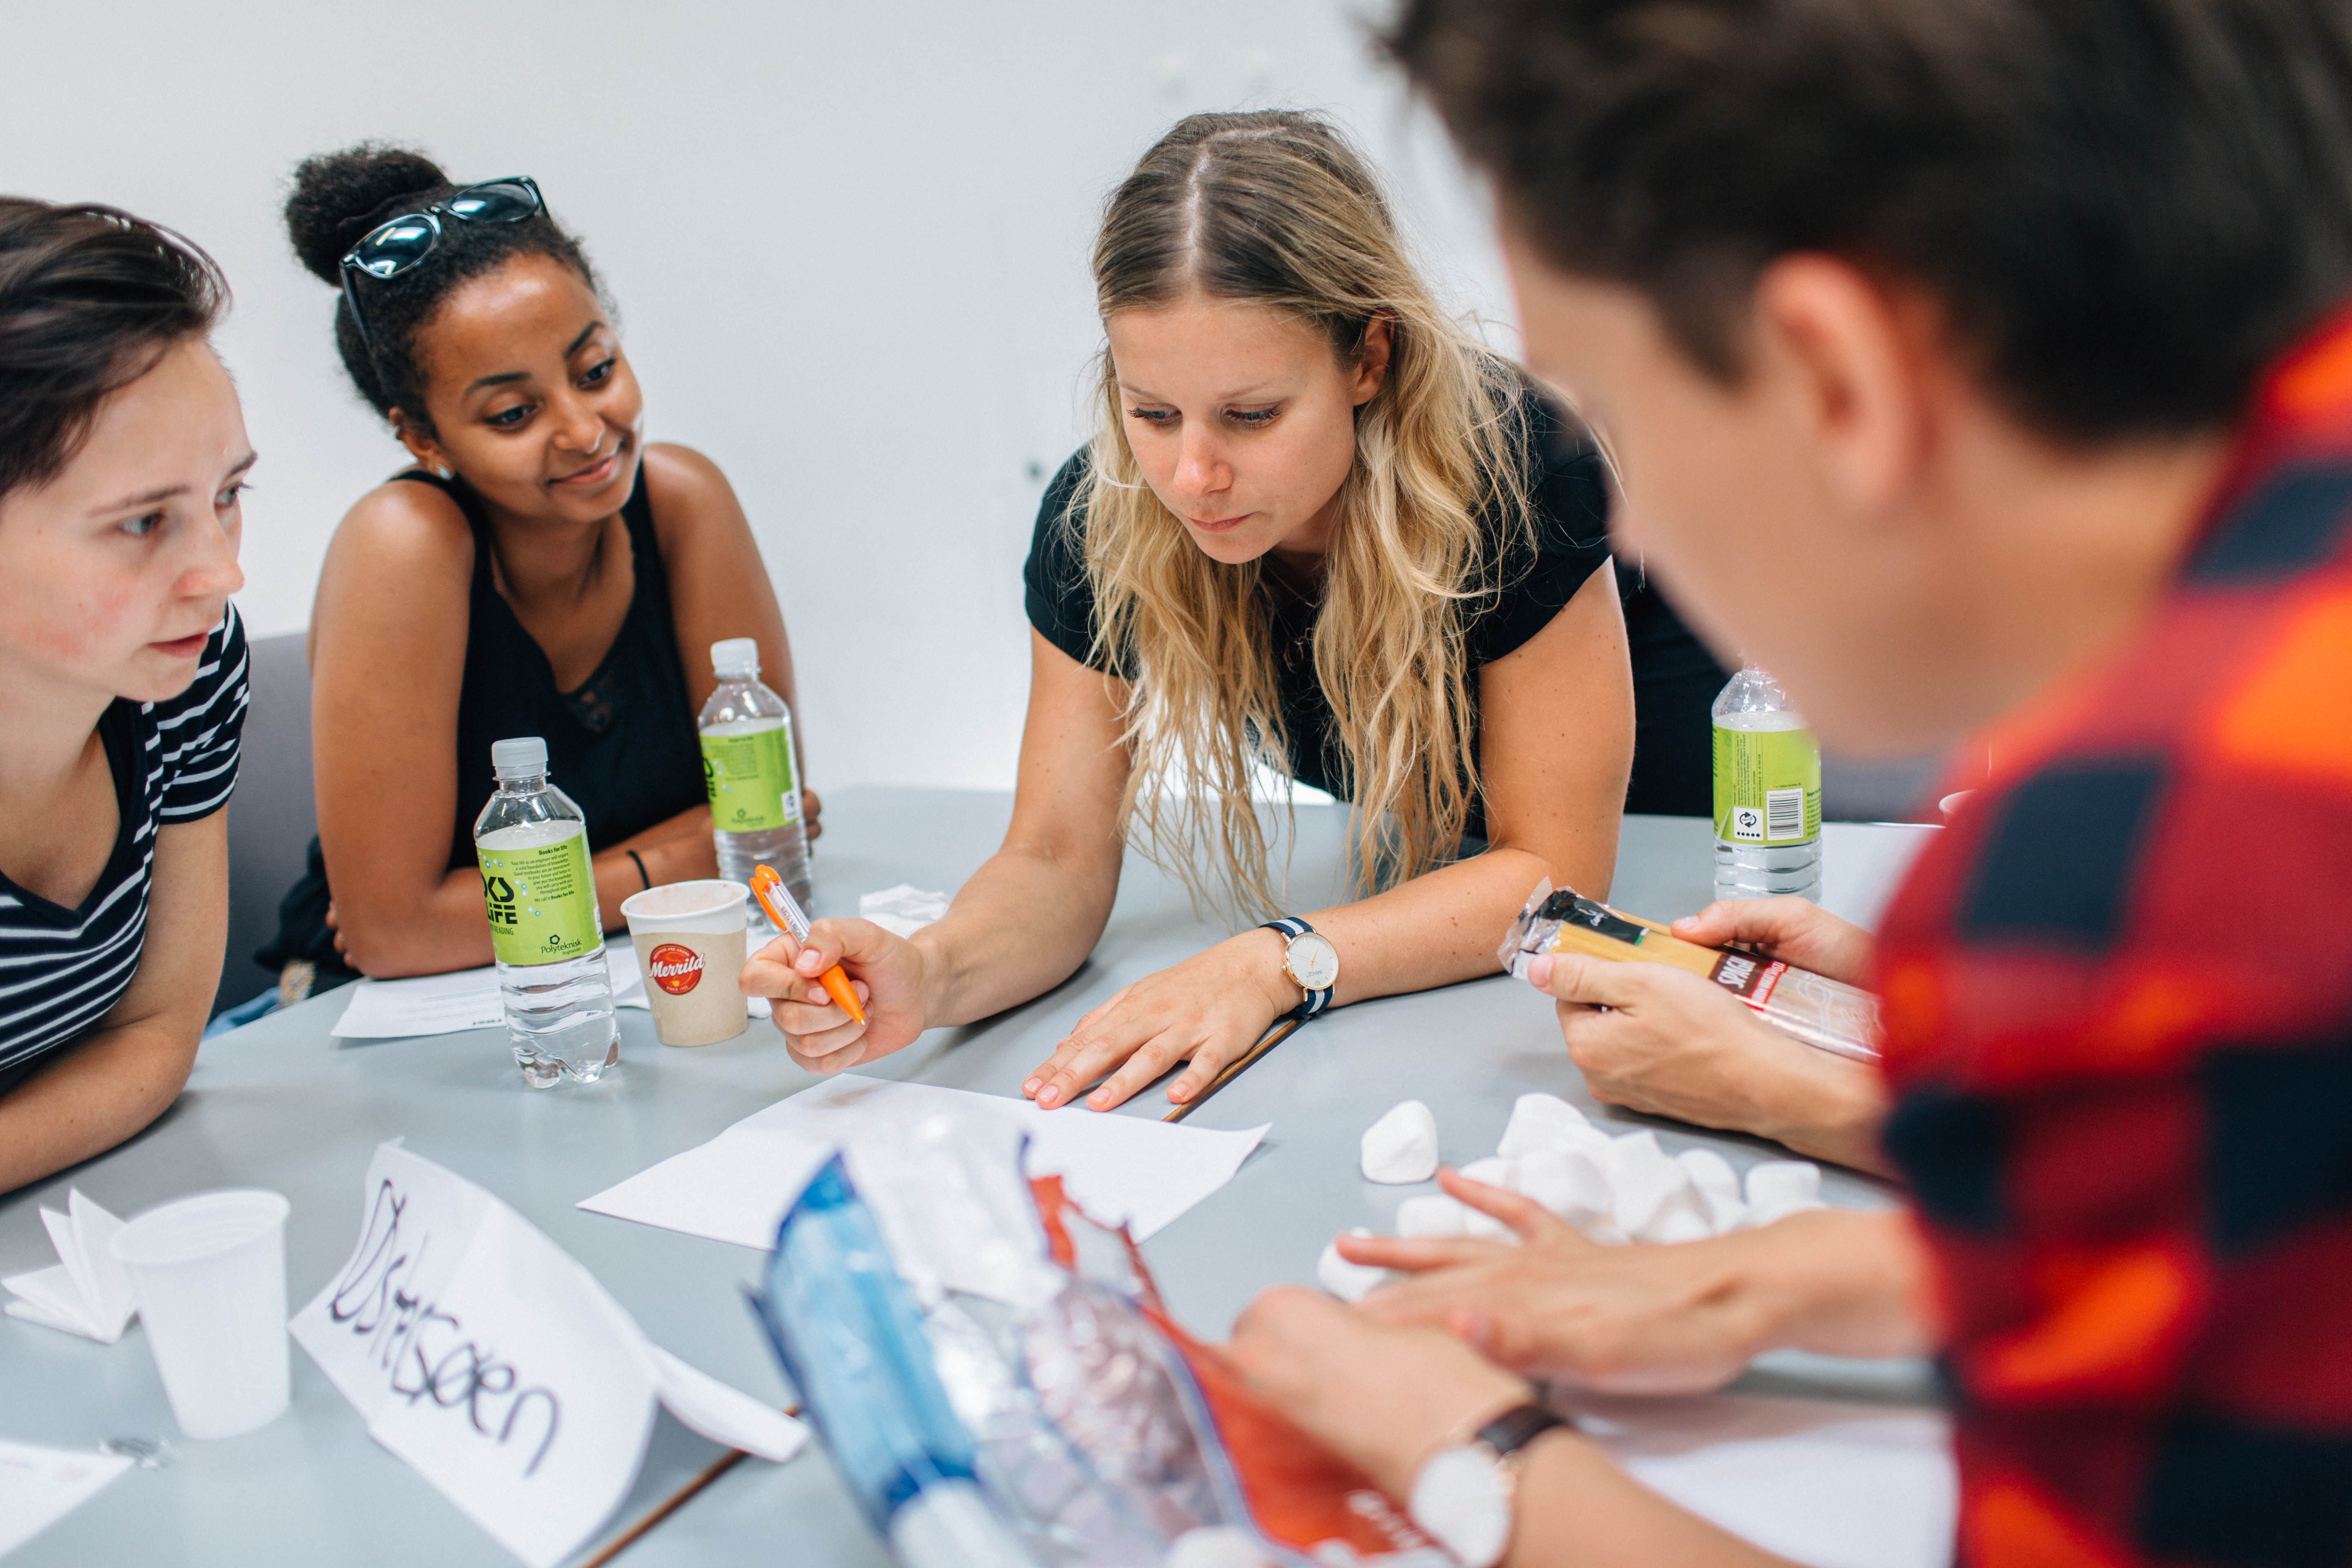 Group Work Prepares Students for Coveted Jobs After Wyncode